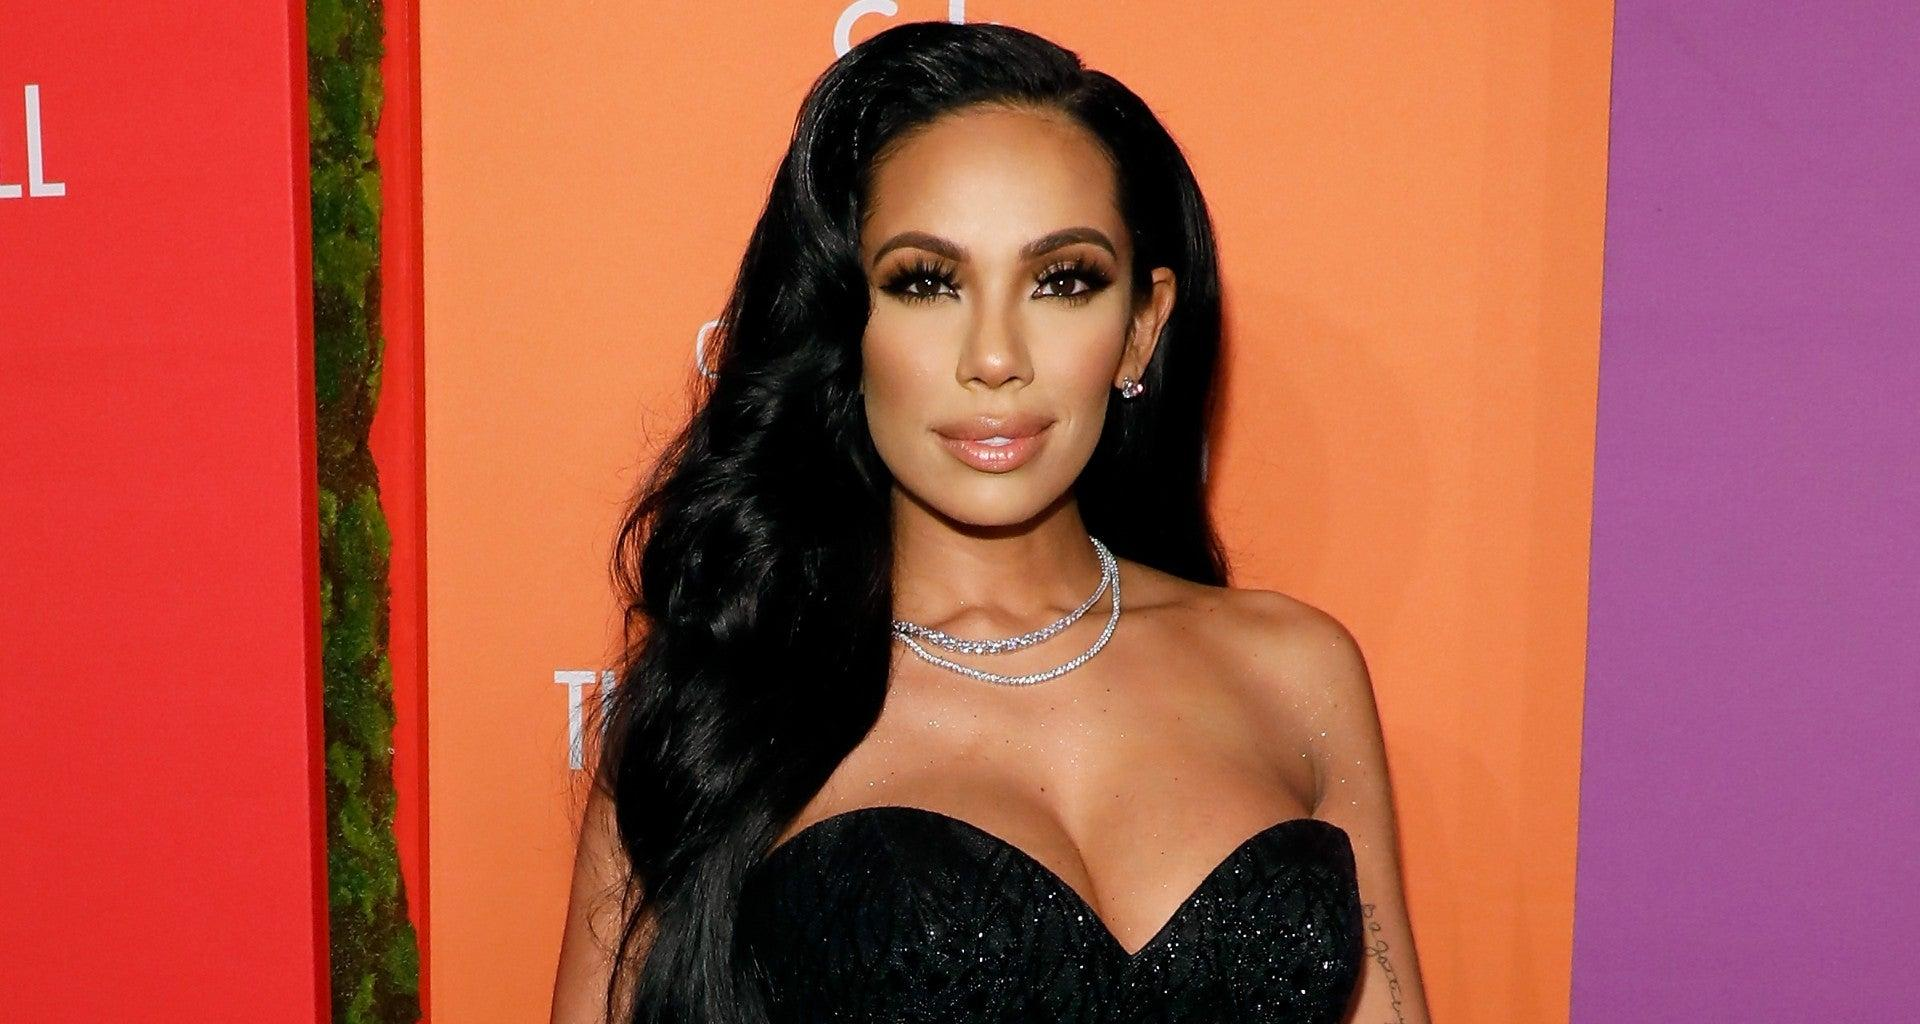 Erica Mena Announces A Big Giveaway On Her Social Media Account - See The Video That Has Some Fans Criticizing Her